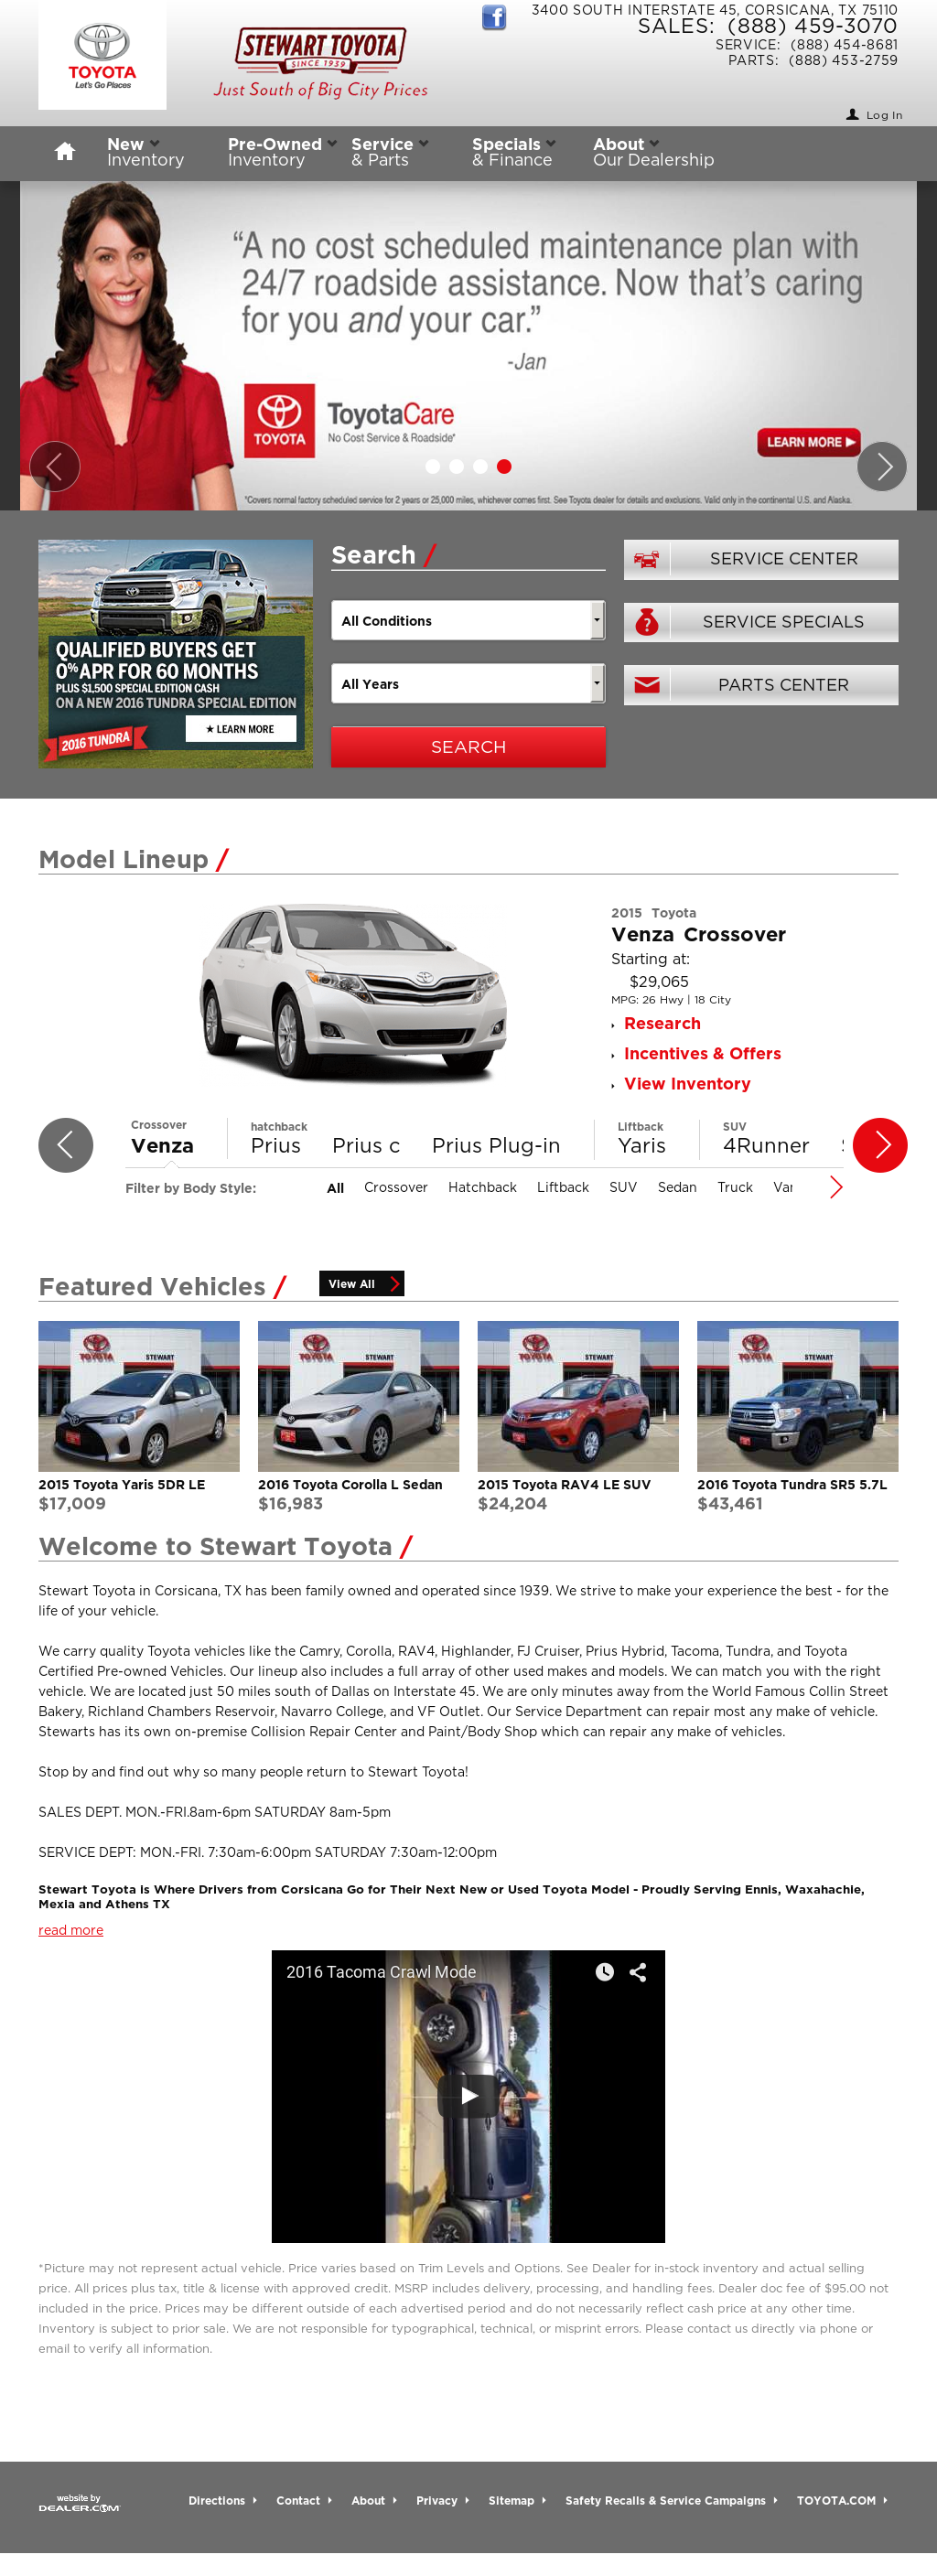 Stewarttoyota petitors Revenue and Employees Owler pany Profile